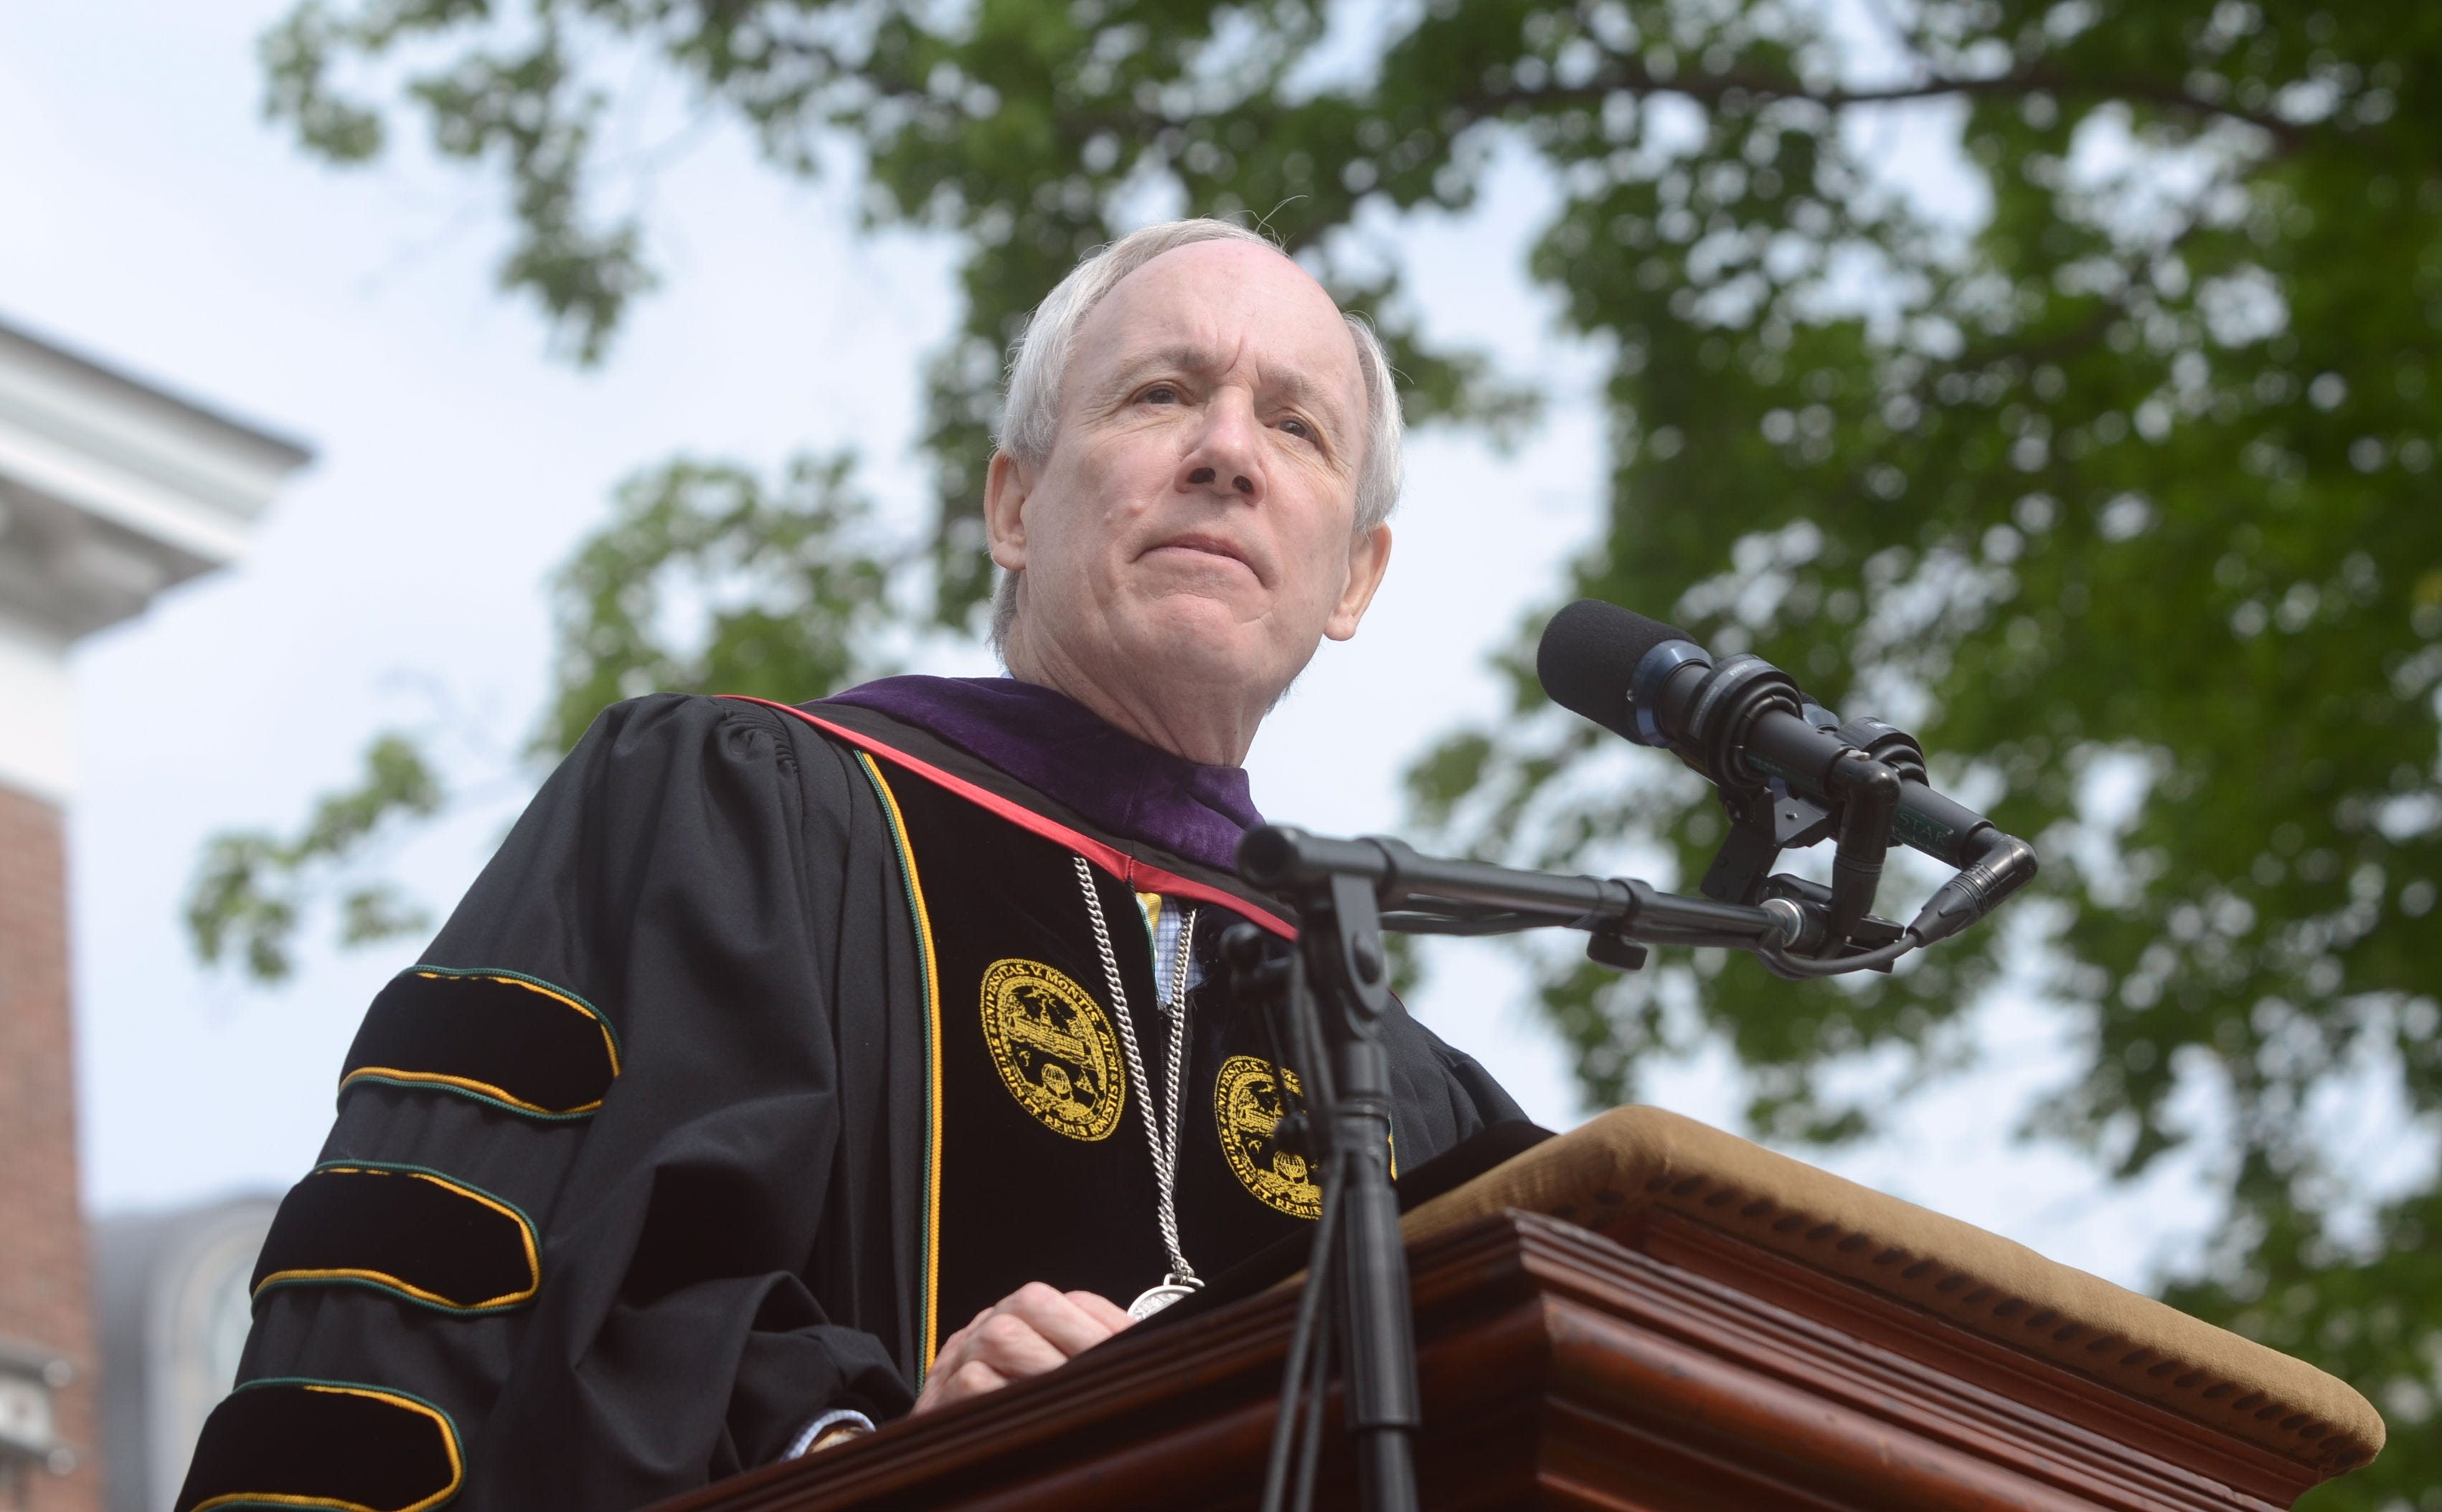 UVM President Sullivan to step aside in 2019 to complete book on campus free speech | Burlington Free Press